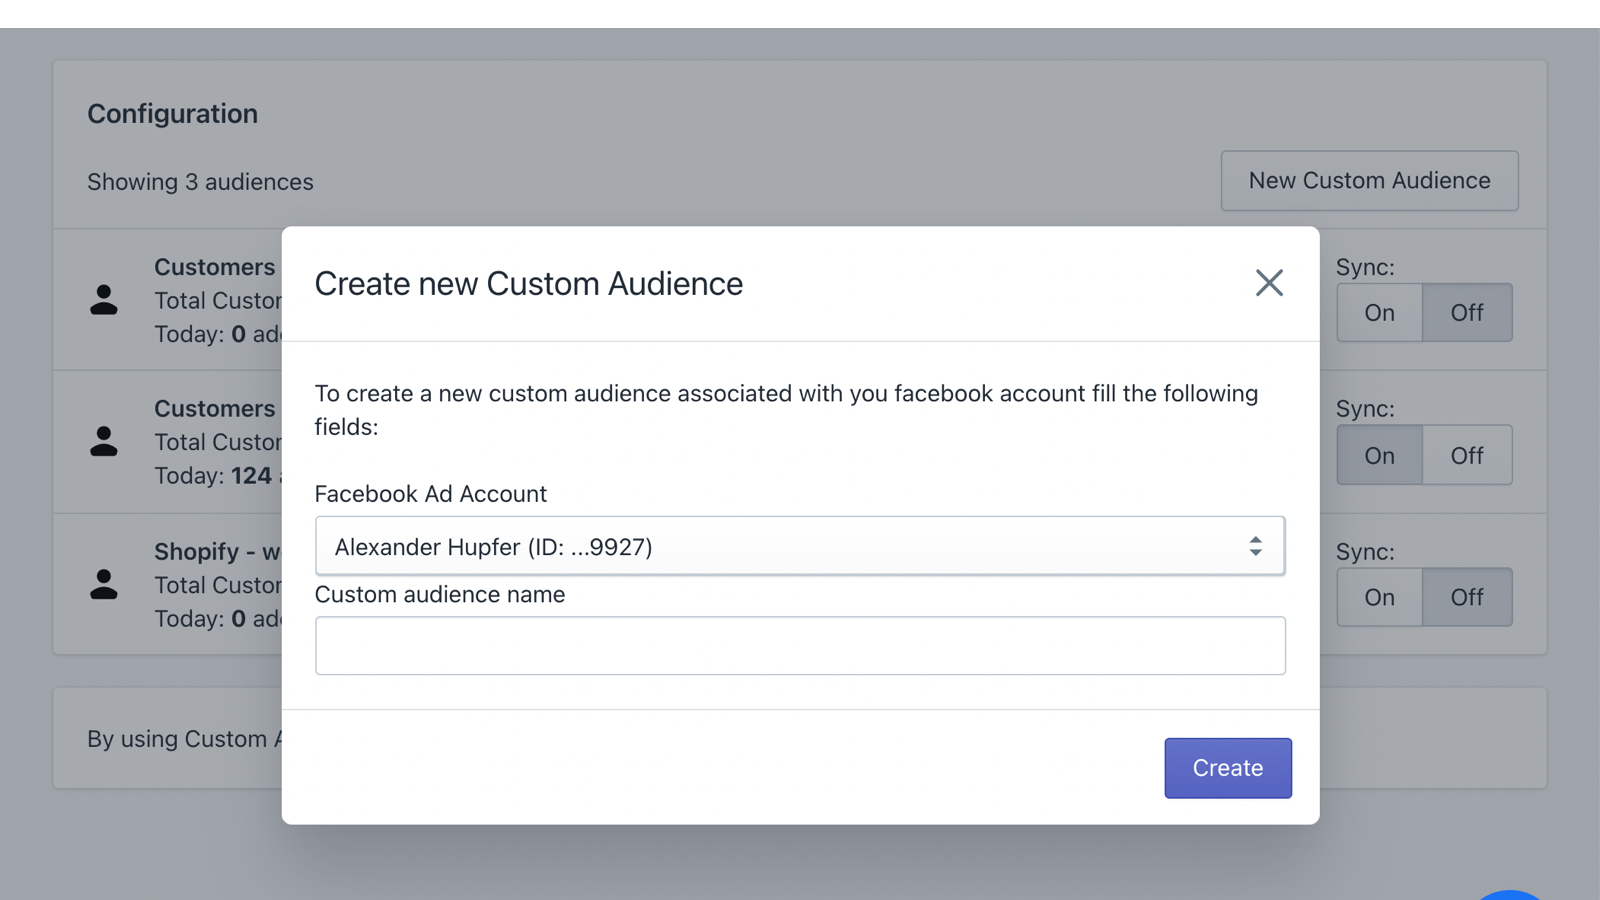 Easy Custom Audience Creation directly in App